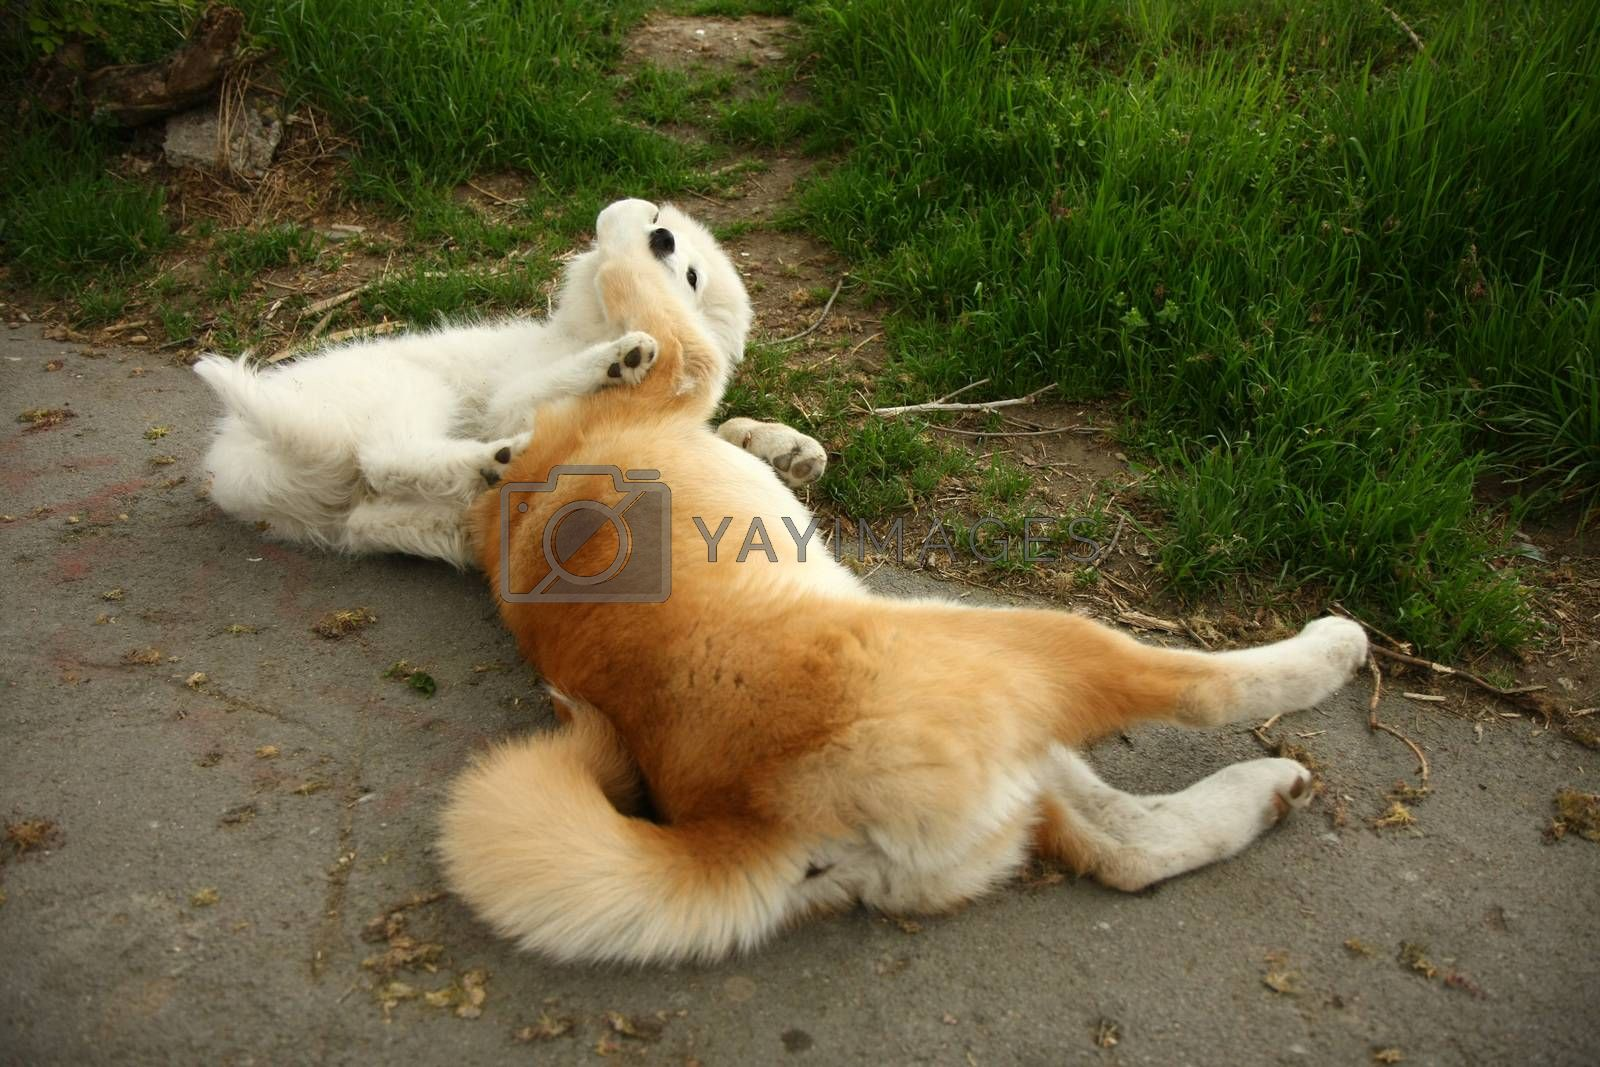 Cute puppies enjoying and playing on the sidewalk